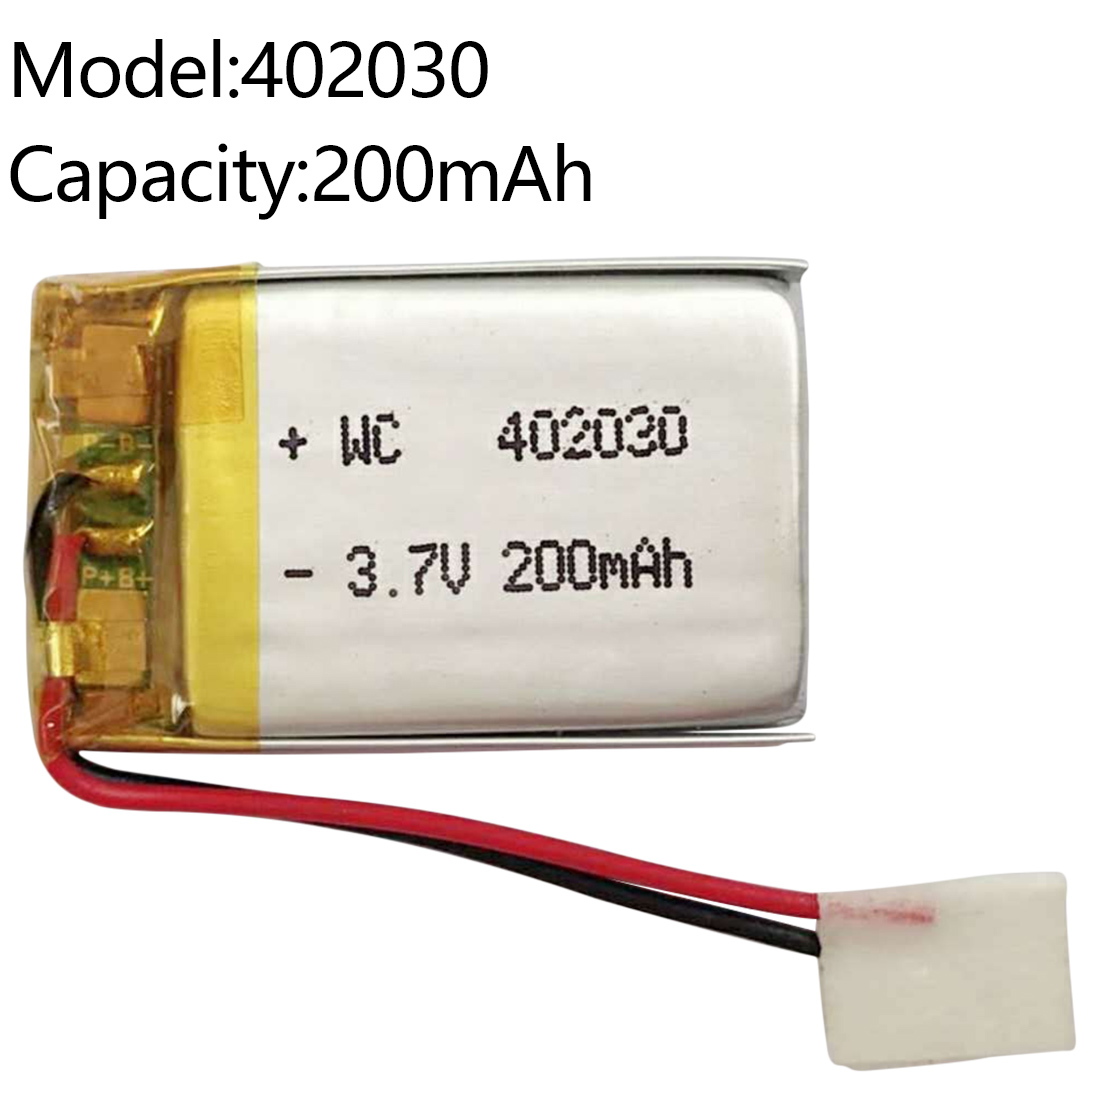 Polymer Lithium Rechargeable Battery 1000/200 MAh Li-ion Battery 3.7V 543450 402030 For Smart Phone DVD MP3 MP4 Led Lamp